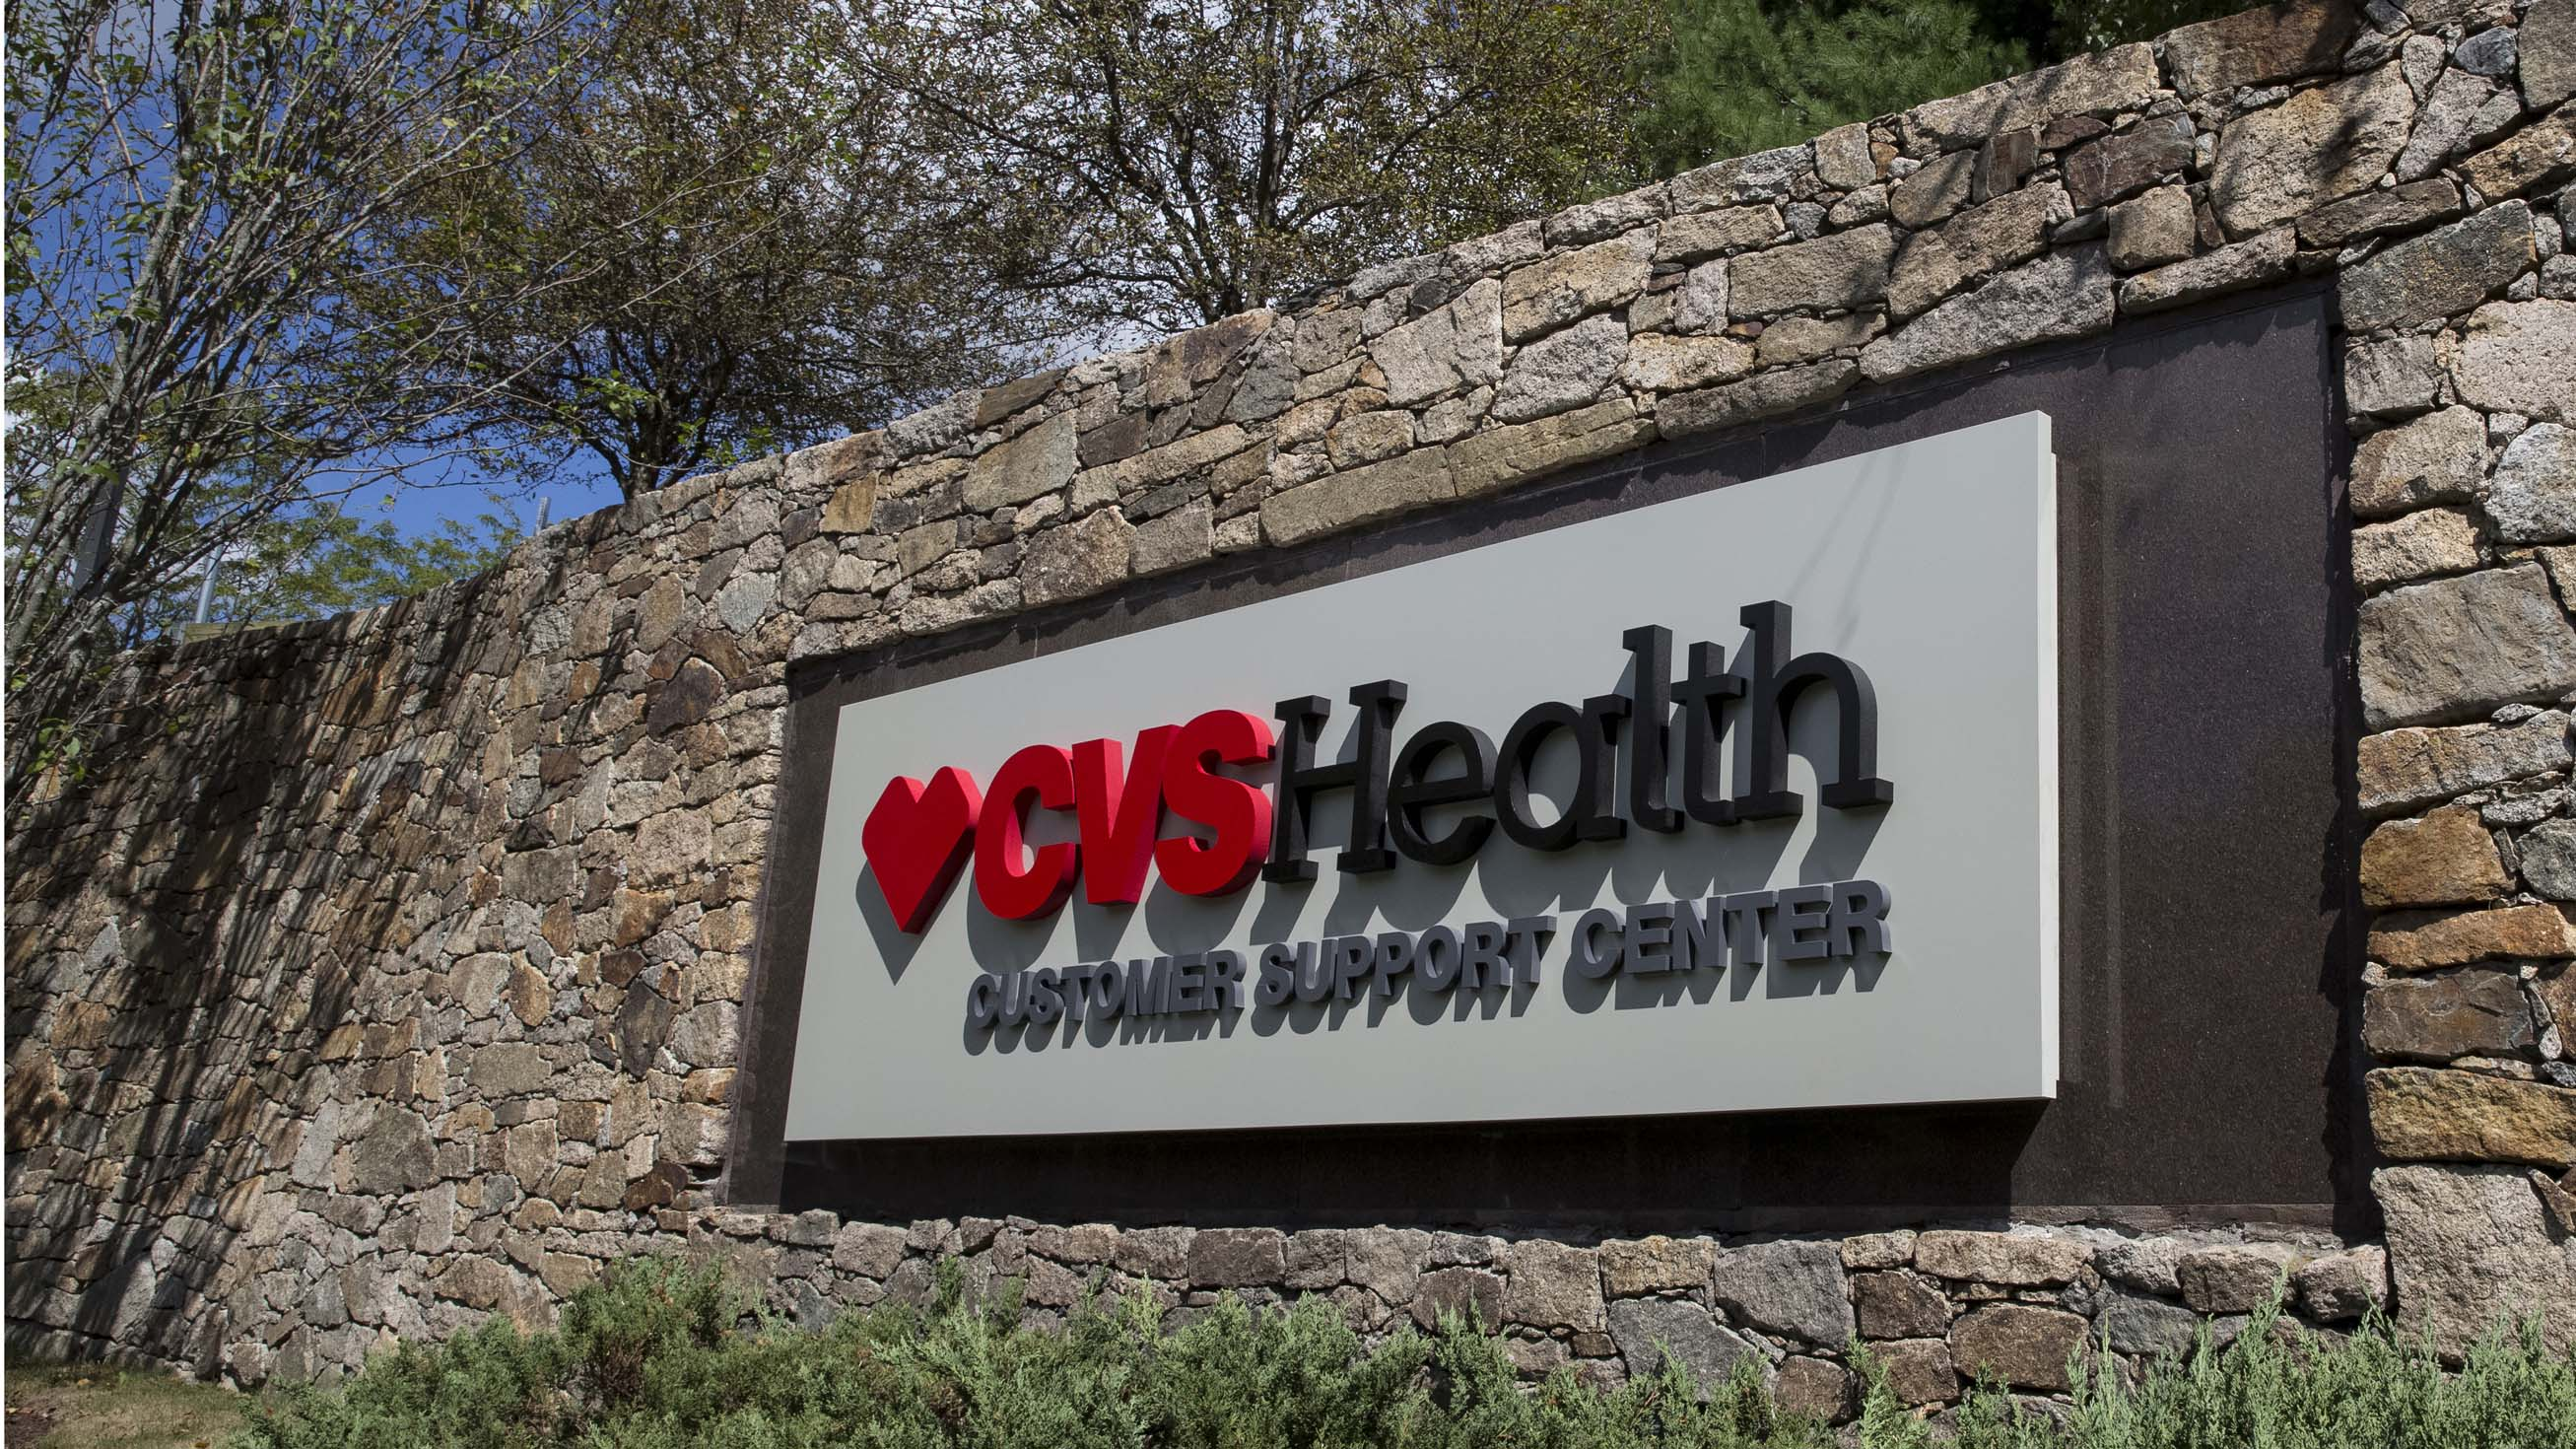 cvs caremark announces name change to cvs health to